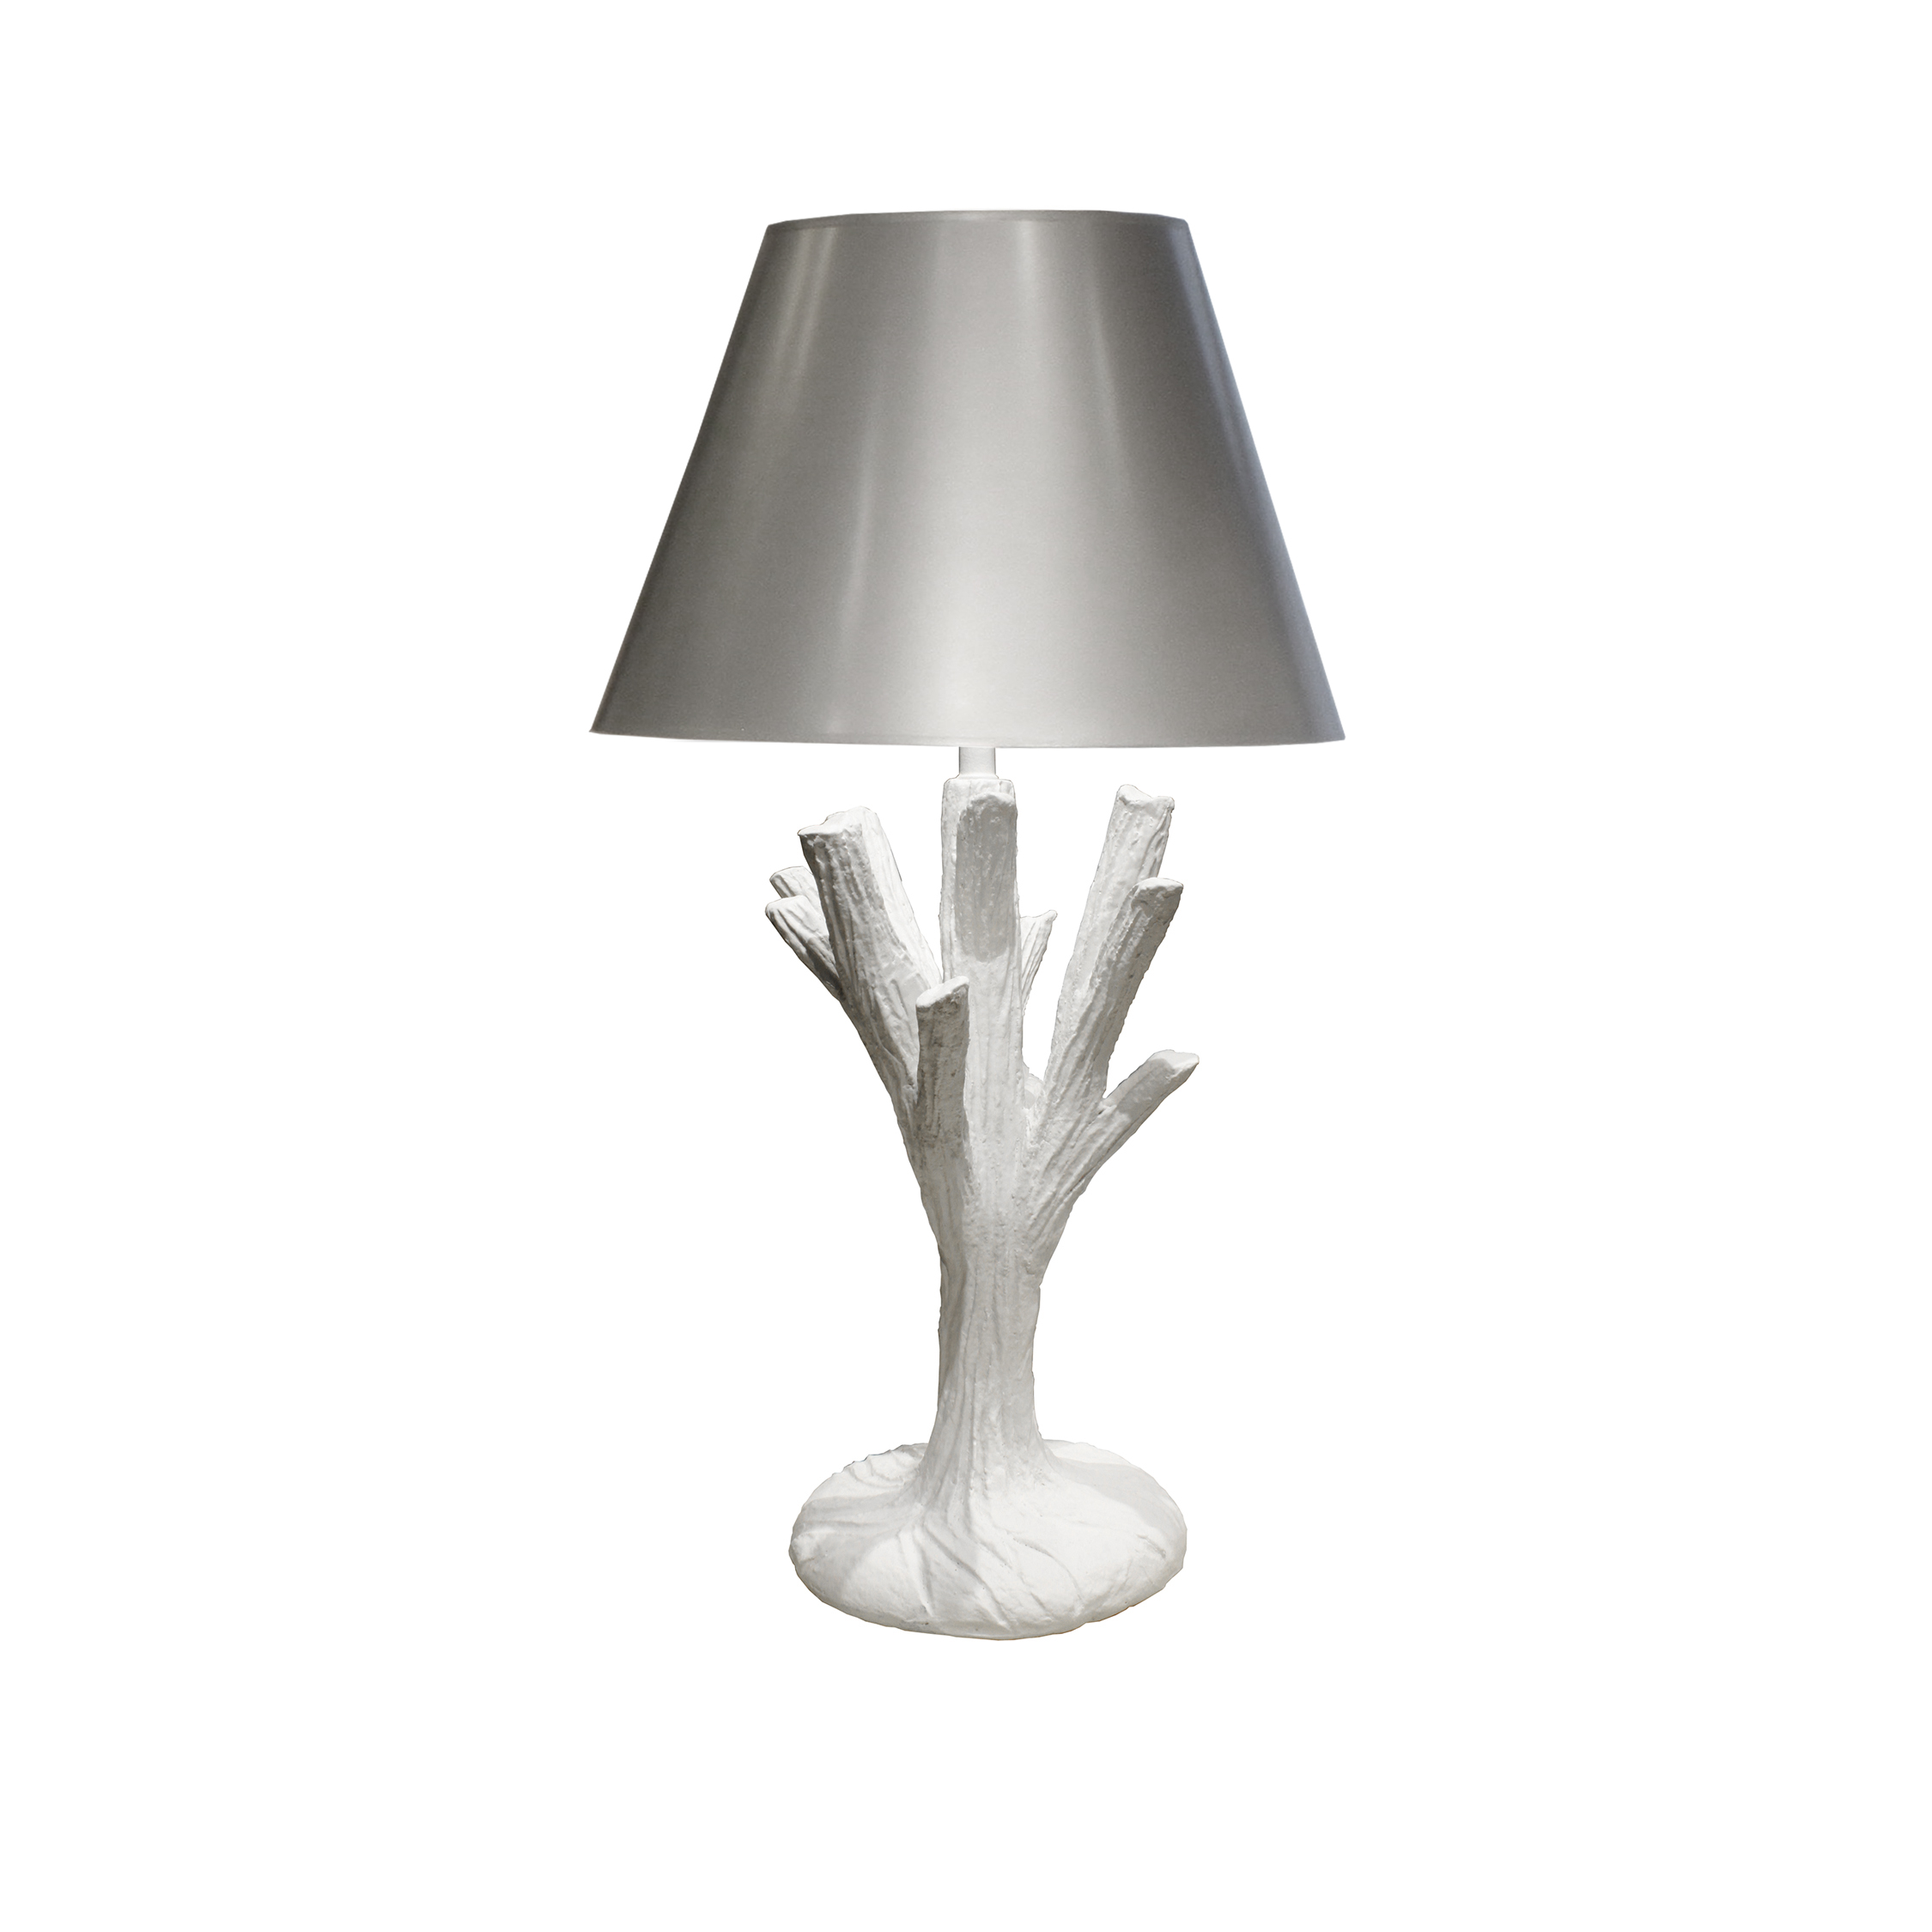 Dickinson 150 Twig plaster tablelamp270 angl.jpg